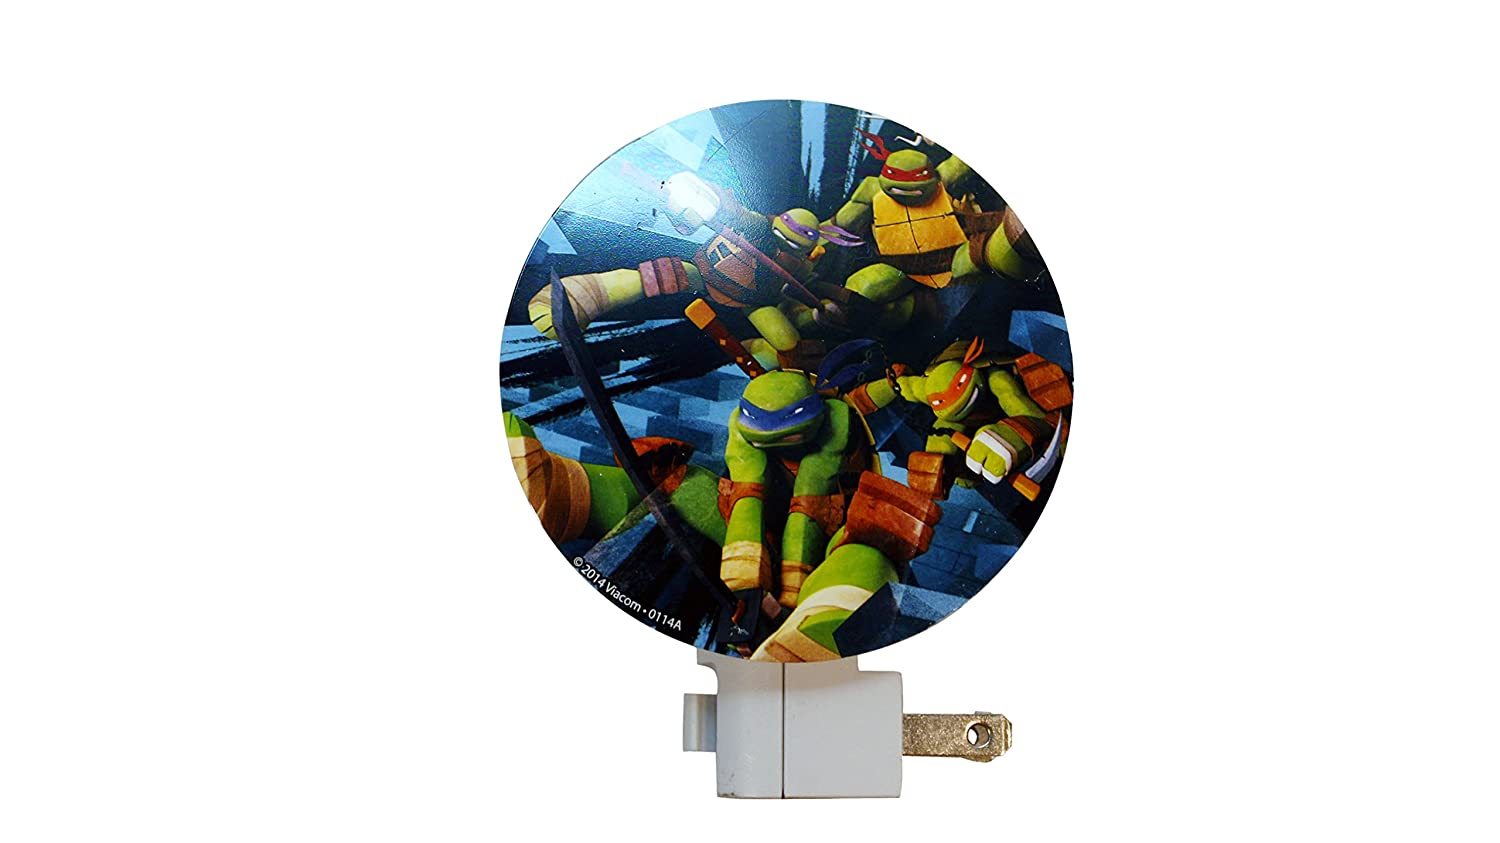 Nickelodeon Teenage Mutant Ninja Turtles - night light